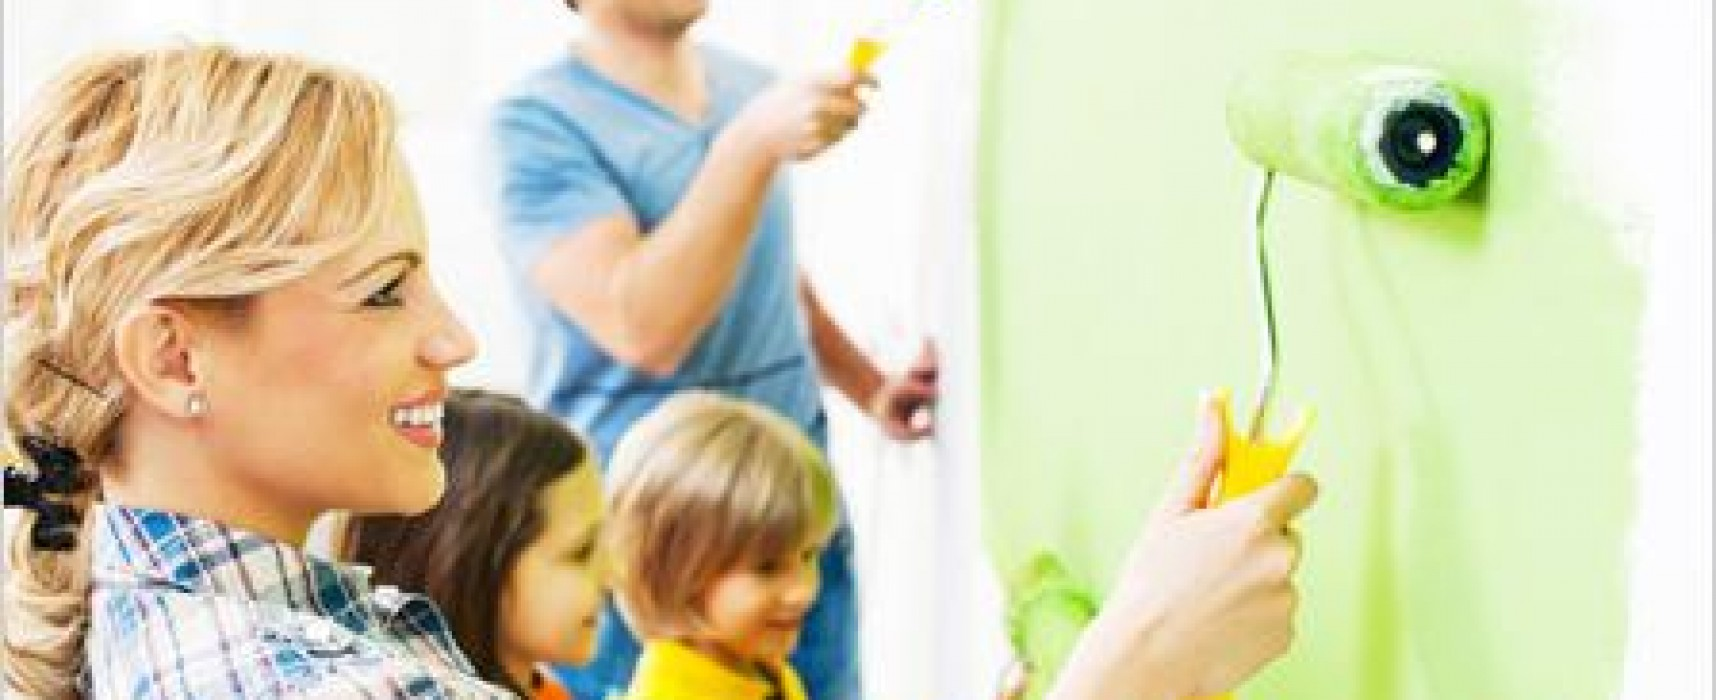 Fun Ways To Avoid Boredom As A Stay At Home Mom